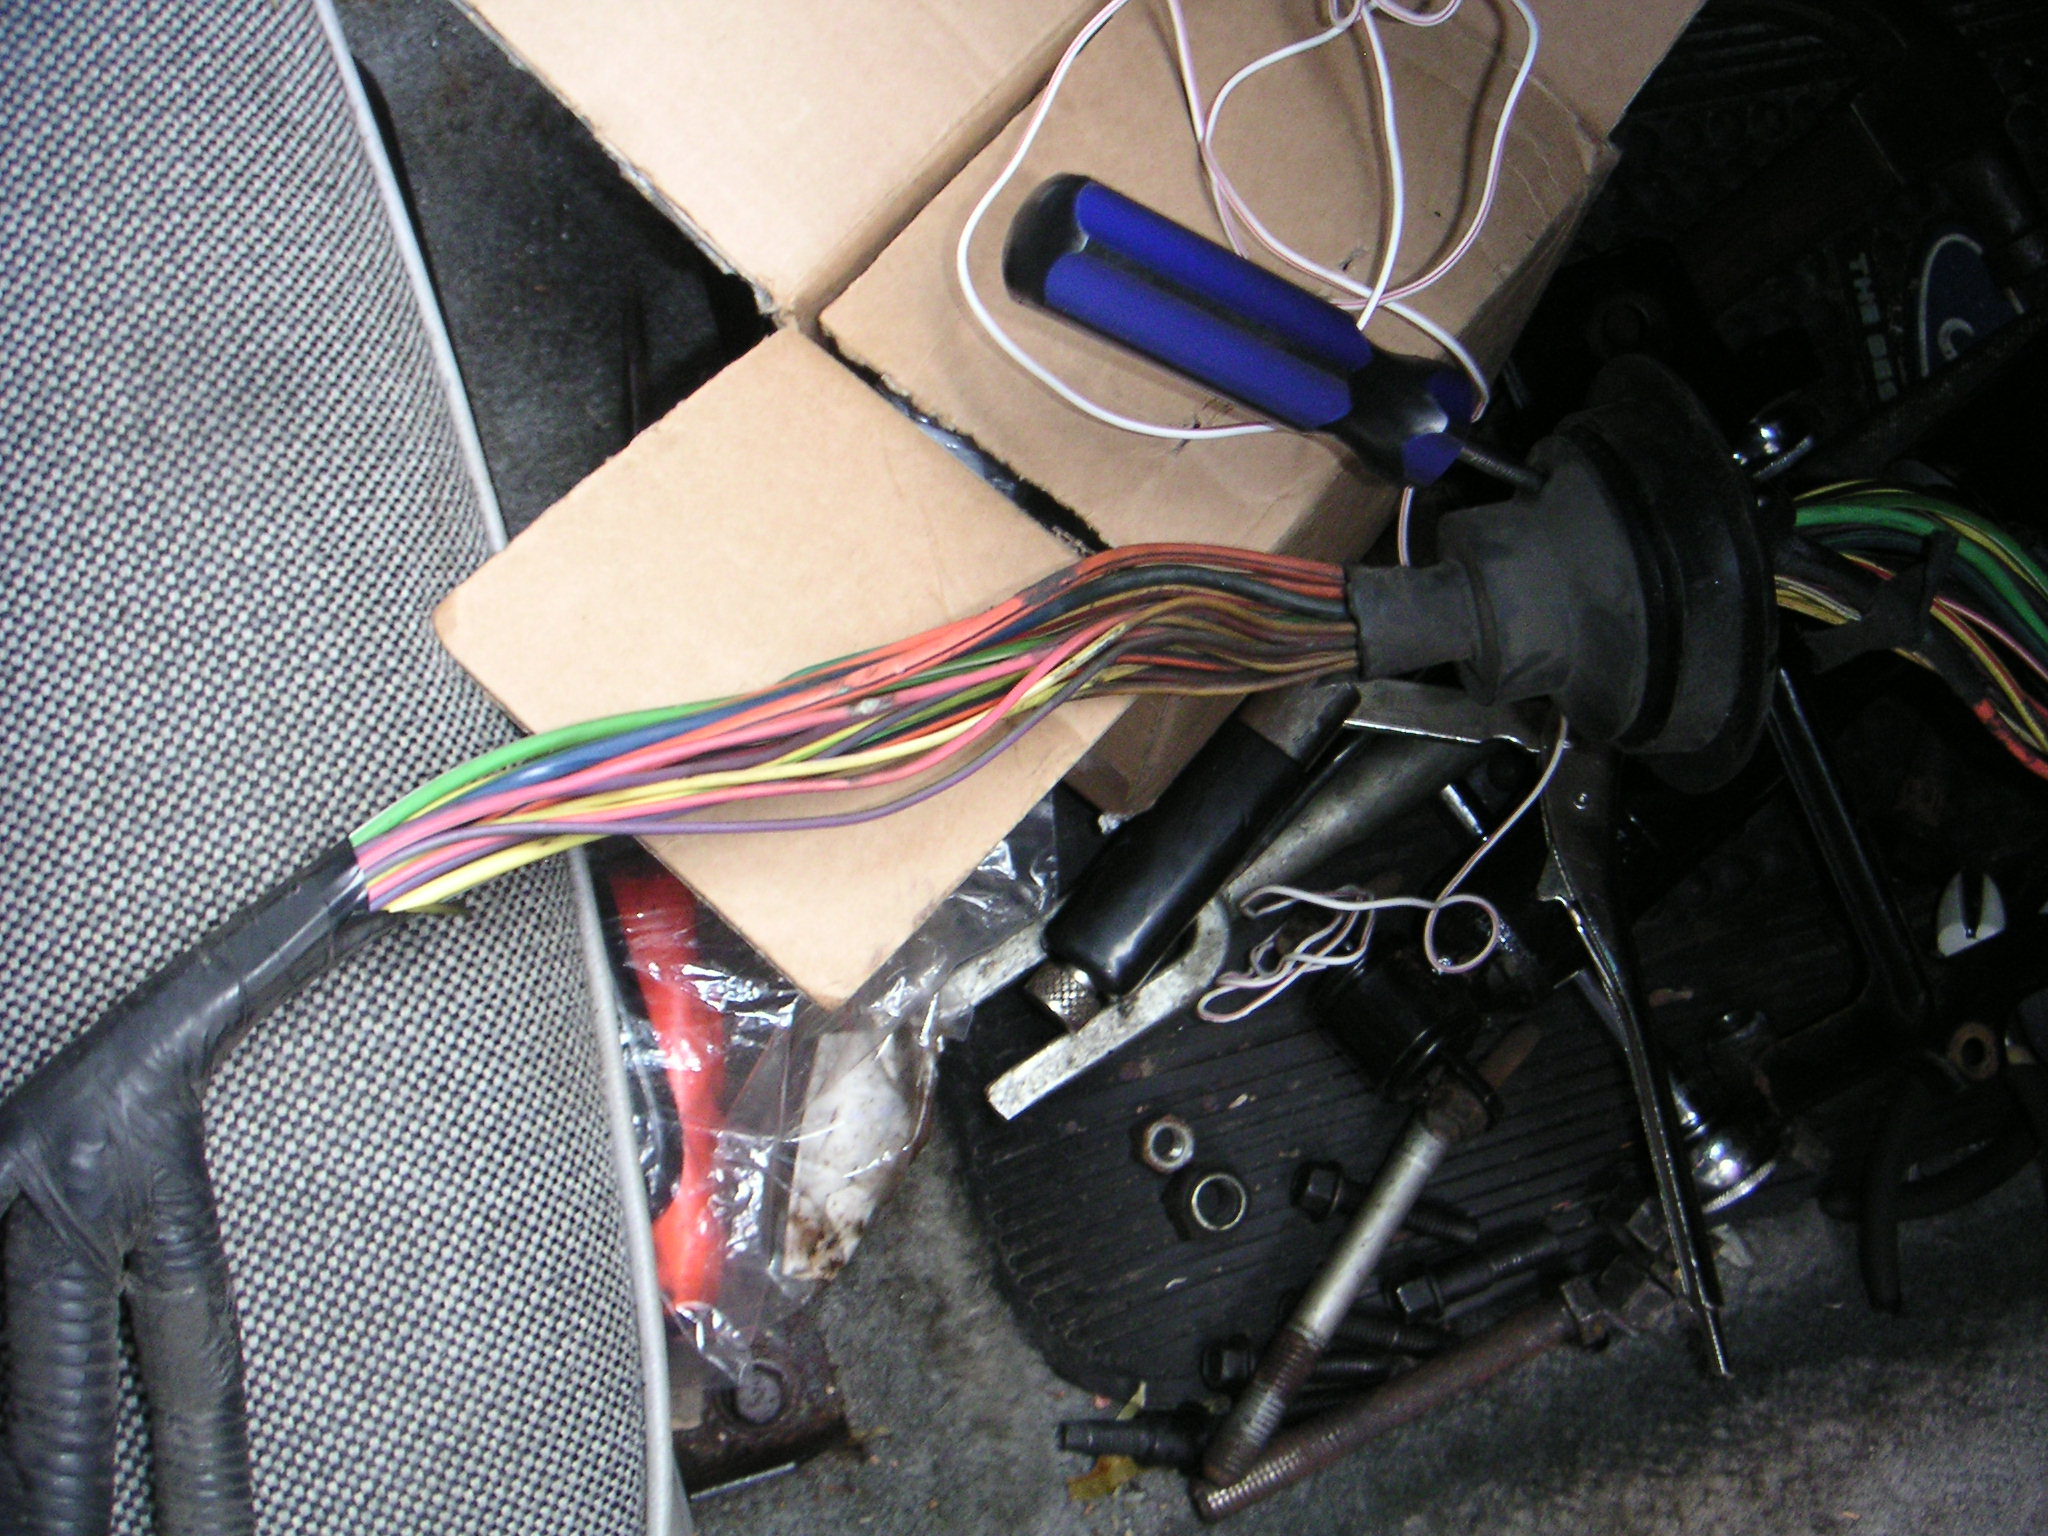 Ford Crown Victoria Wiring Harness Problems Upfitter Under Hood The Federal Us Marshals Service Vehicle Upfitters Drilled An Extra Hole Through This Rubber Grommet To Pass Some